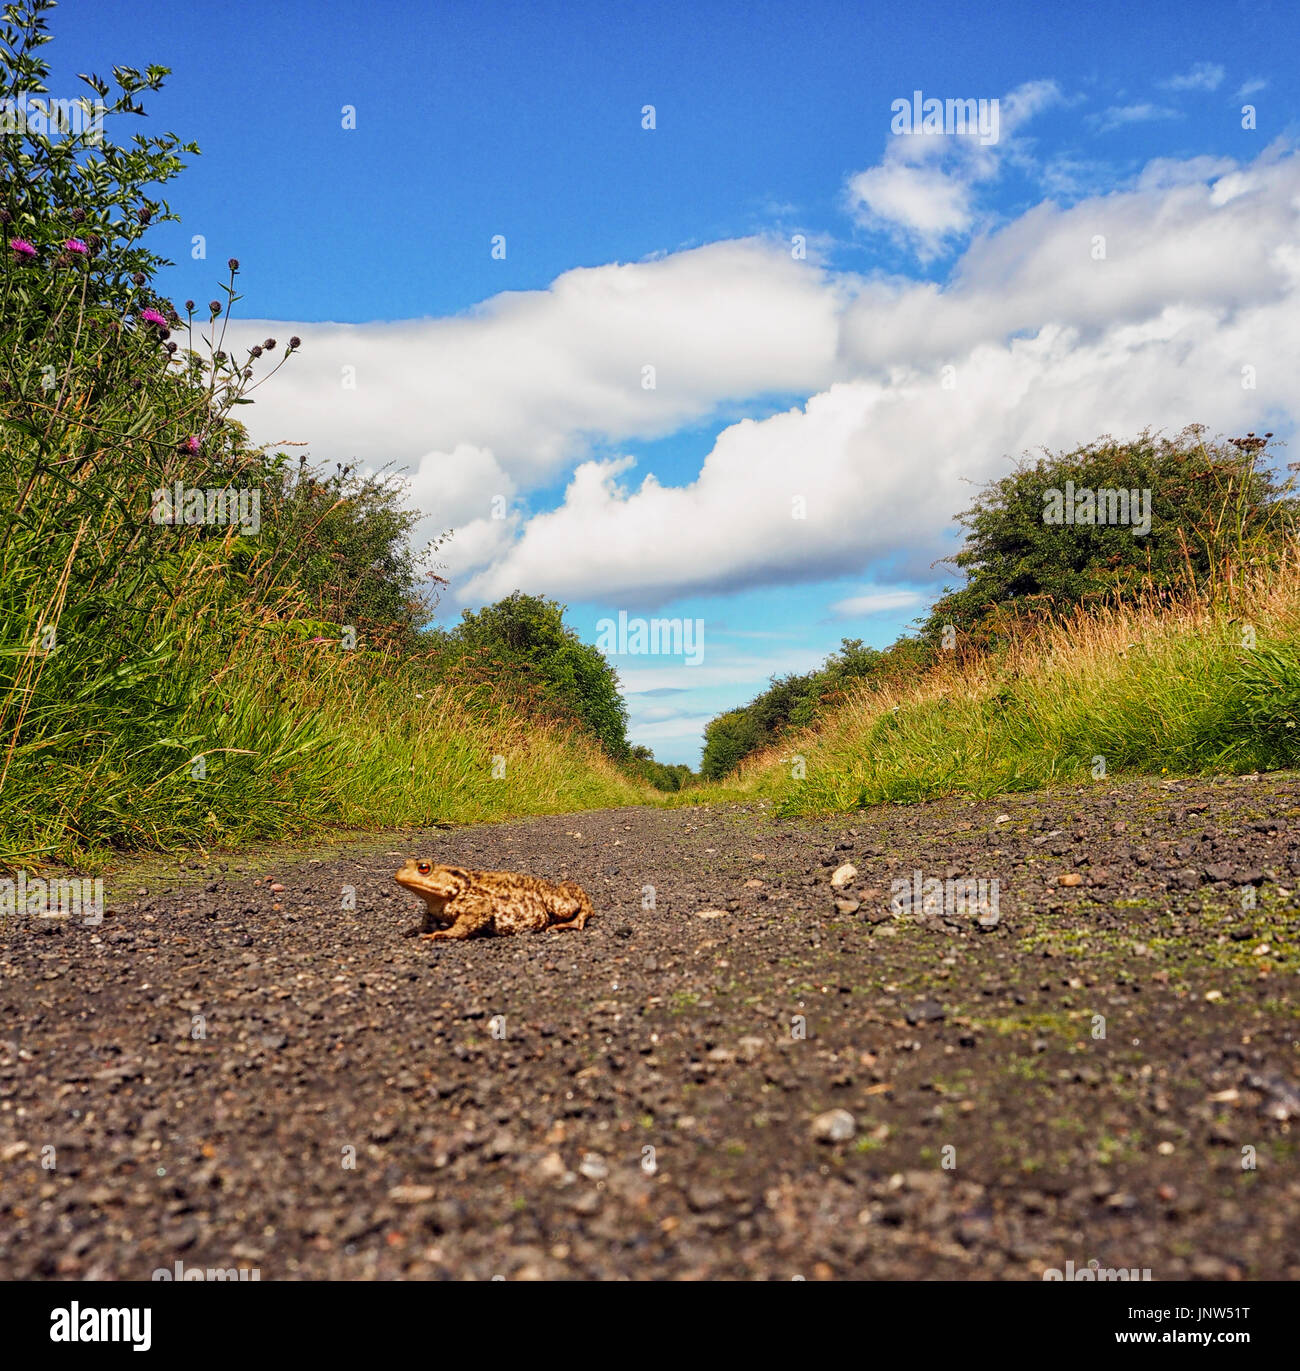 A frog crossing a road - Stock Image